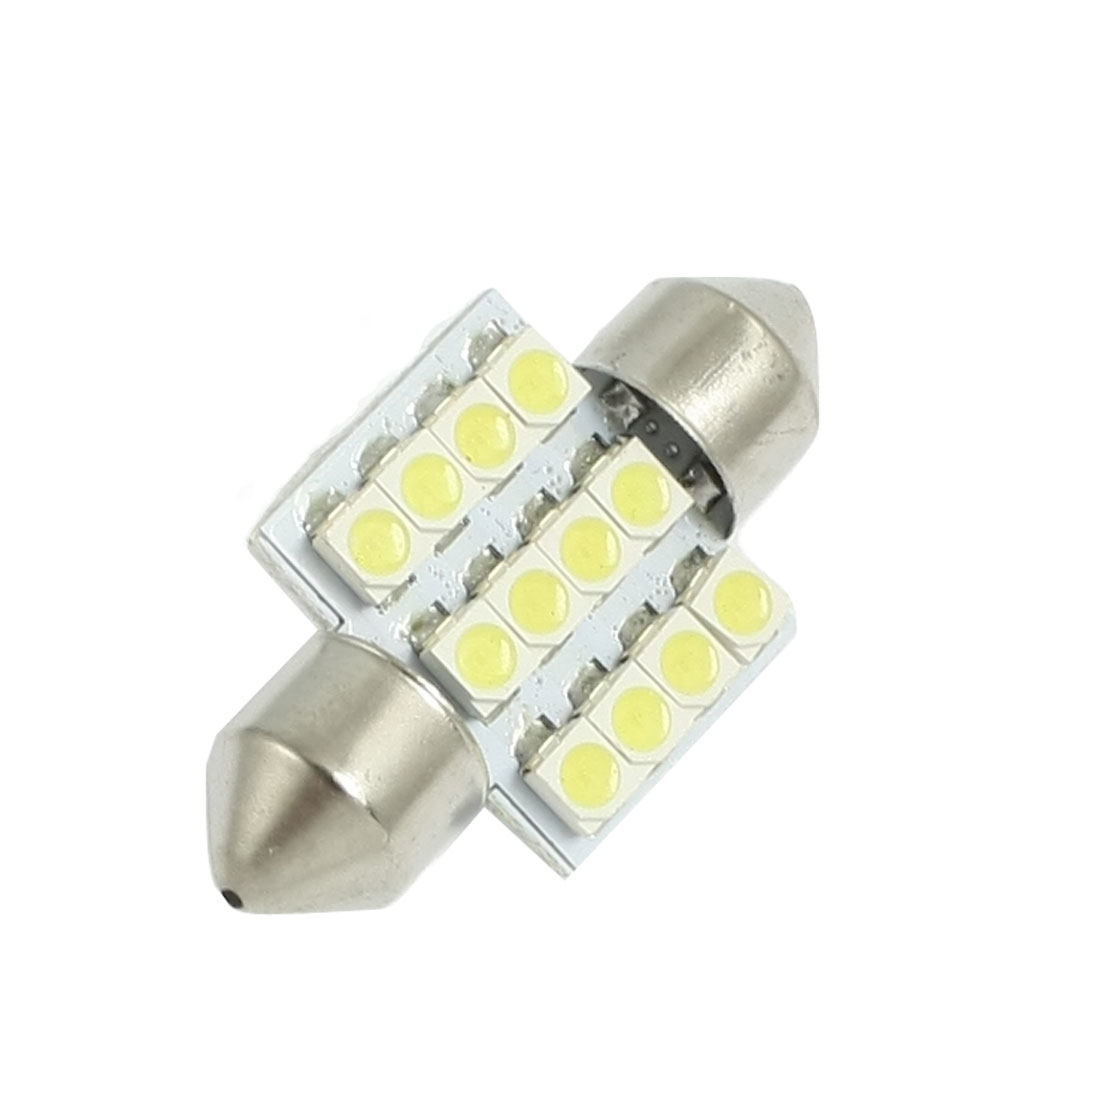 "31mm 12-SMD 1.25"" 12V Festoon Dome Light 3528 1210 LED Bulbs DE3175 DE3022 DE3021 3175"